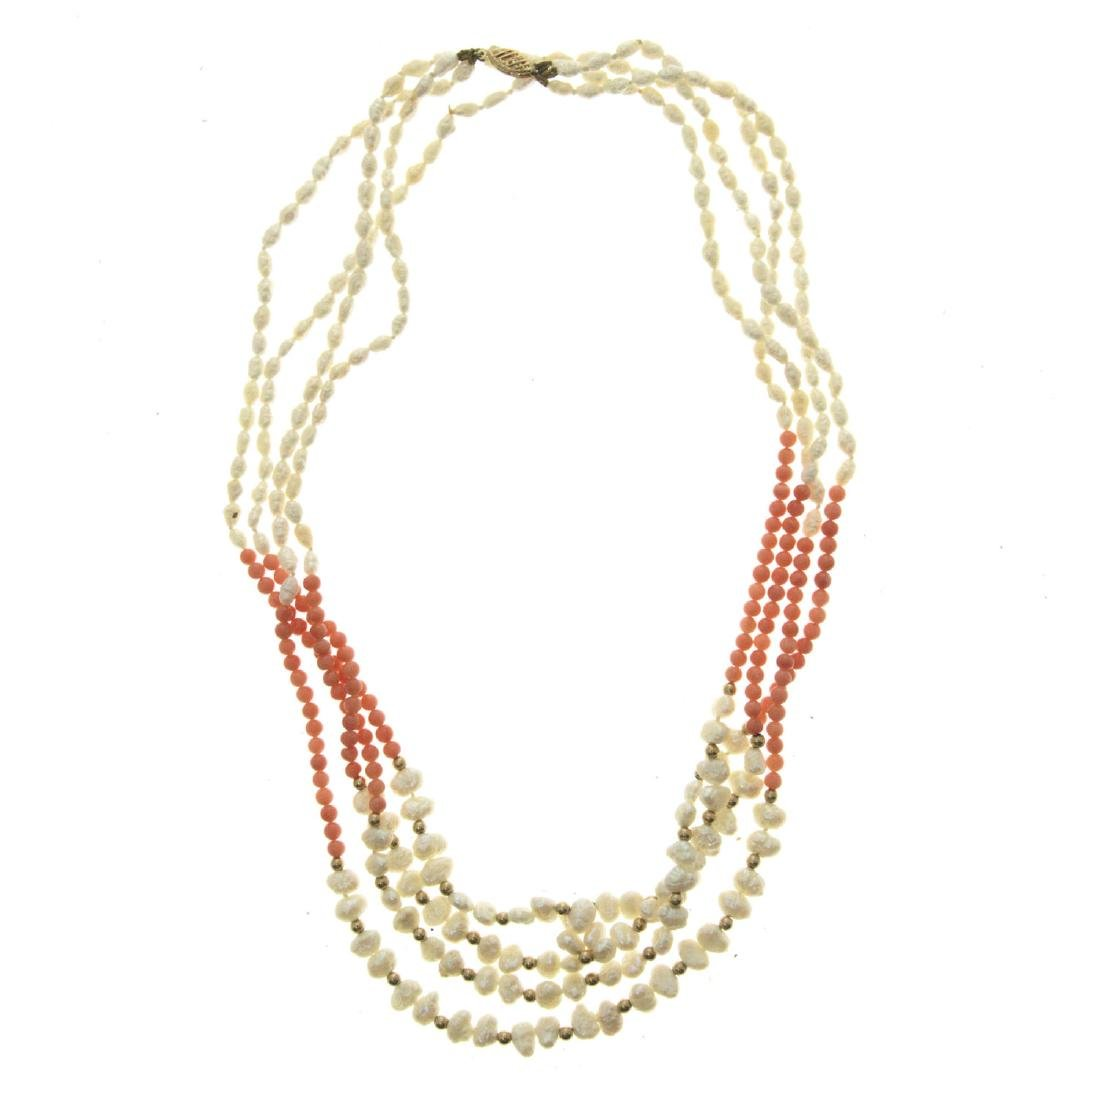 14k Yellow Gold, Pearl and Coral Necklace.